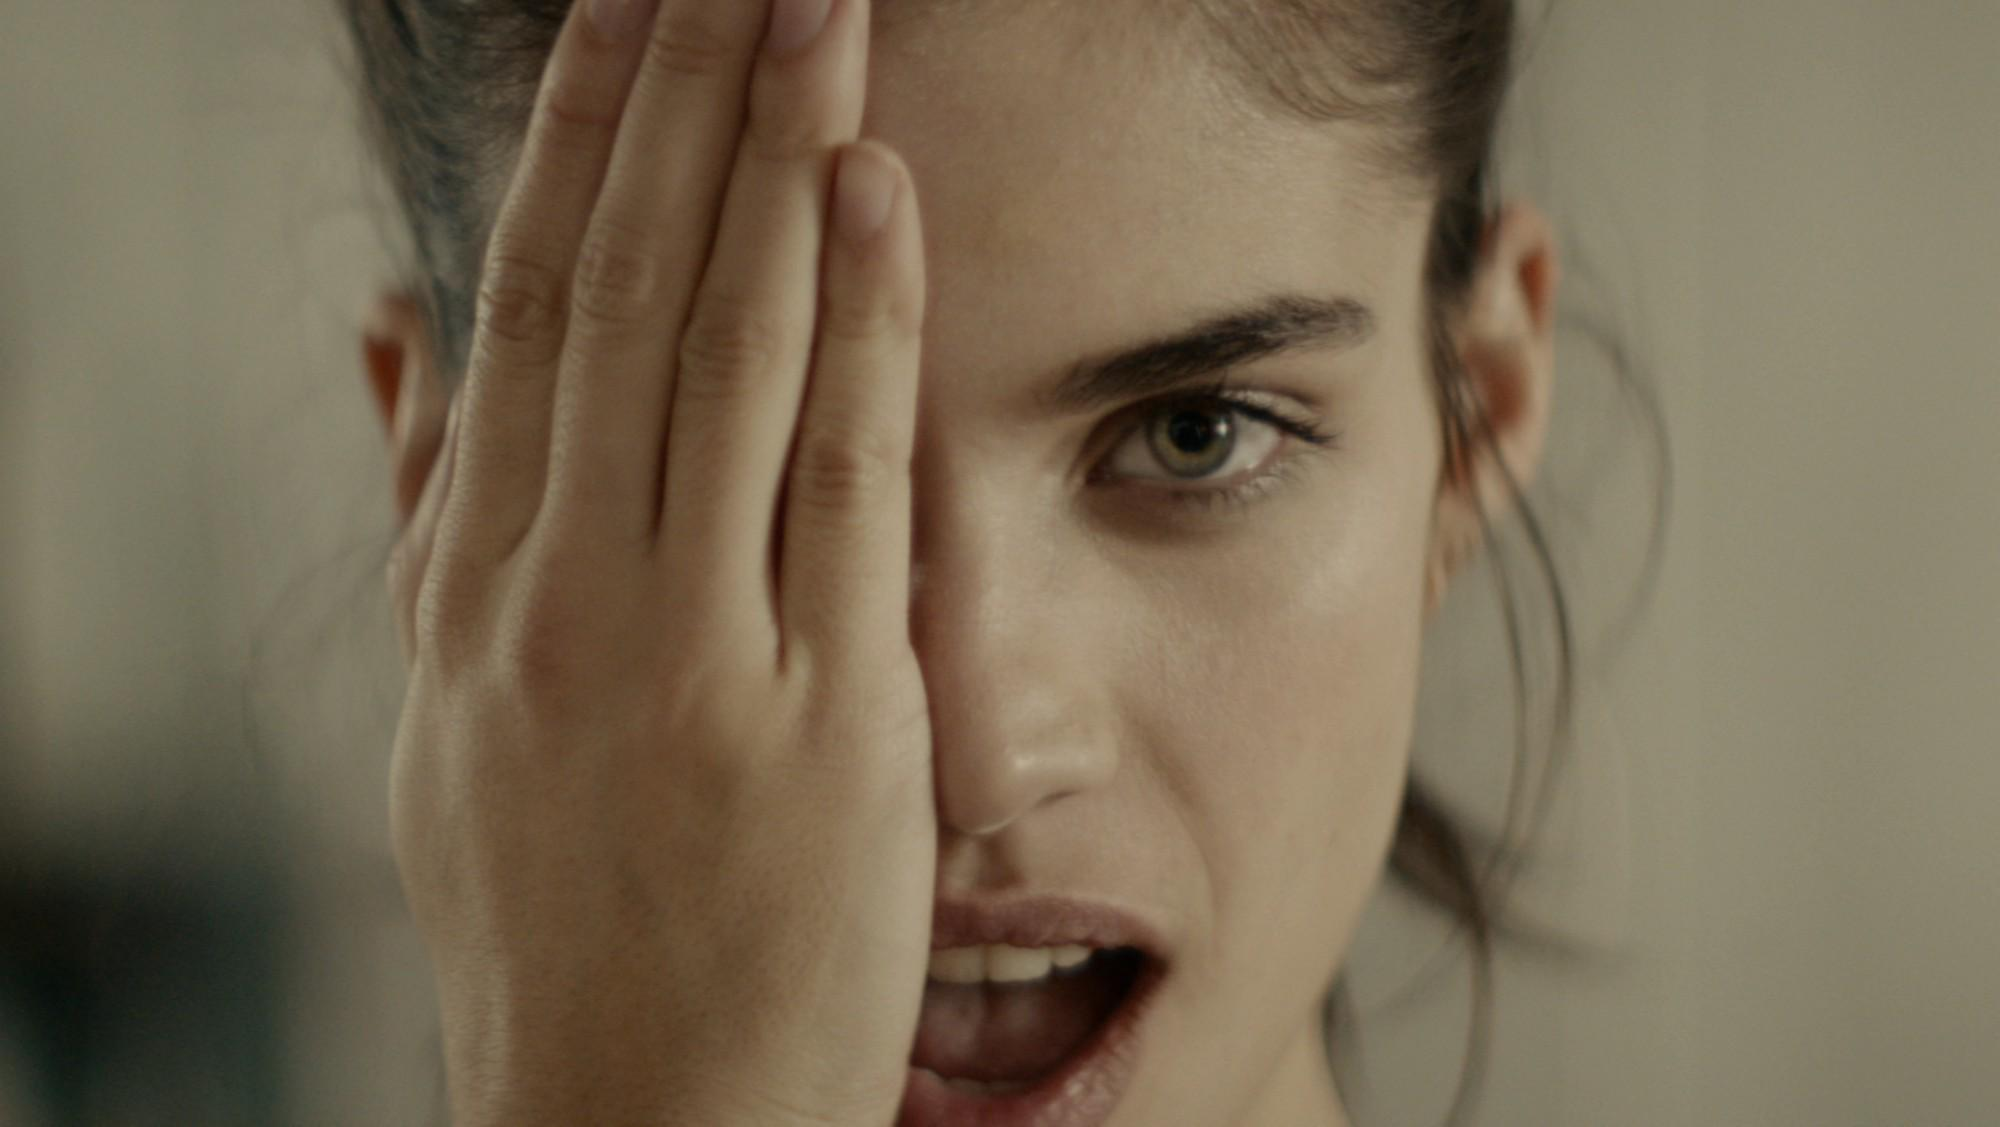 Watch, listen, learn + work out with @Sara_Sampaio: http://t.co/m2dvc7f15C http://t.co/2Swz7dl9Y6